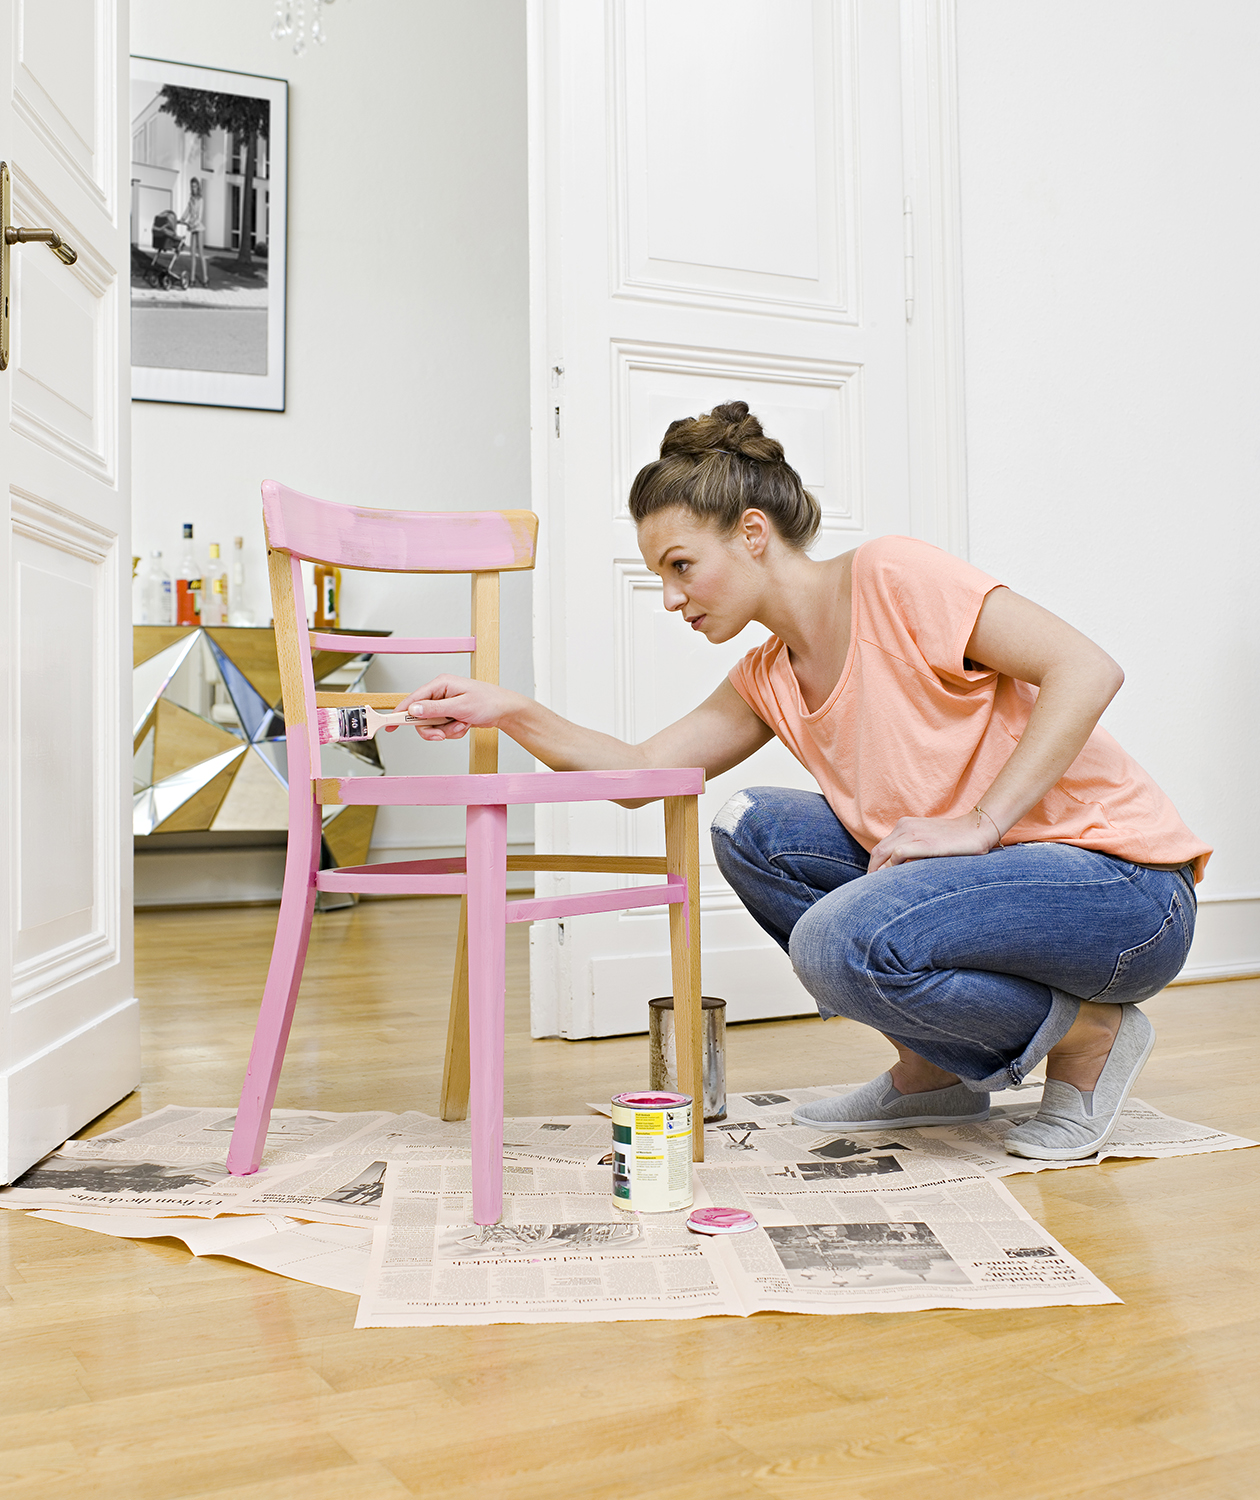 Woman painting wooden chair